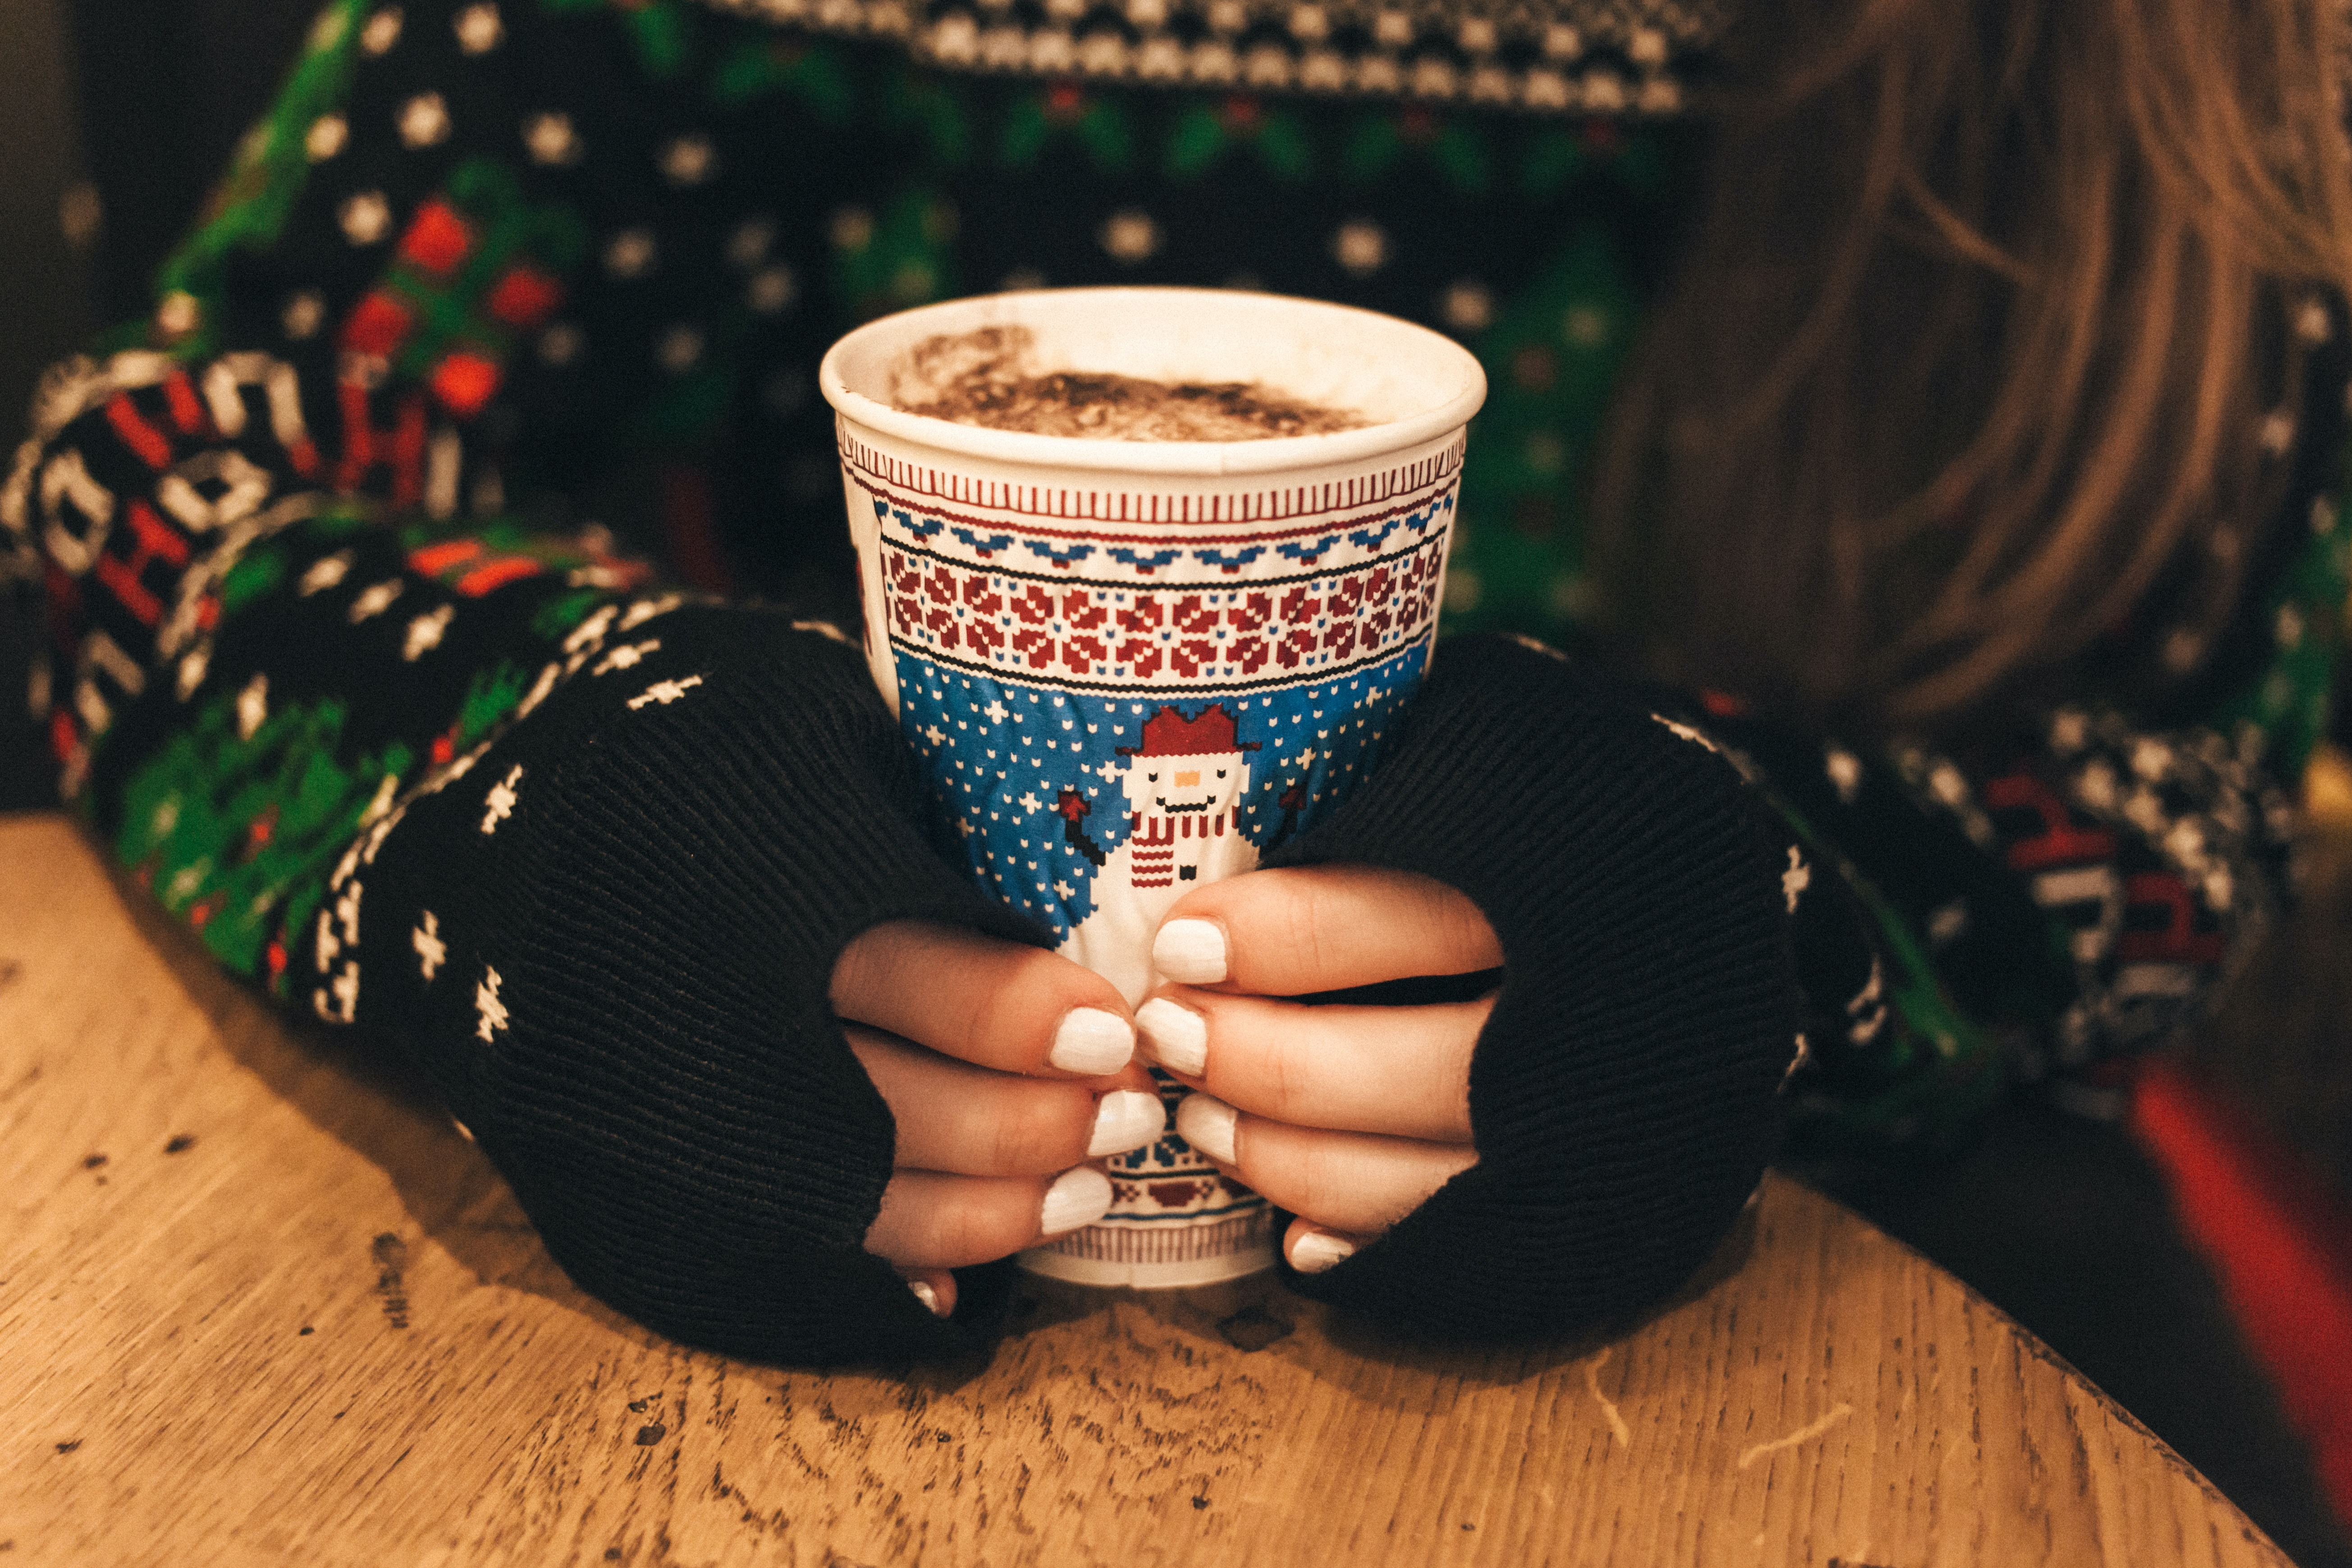 A long-haired woman with white painted nails holding a cup of hot chocolate.